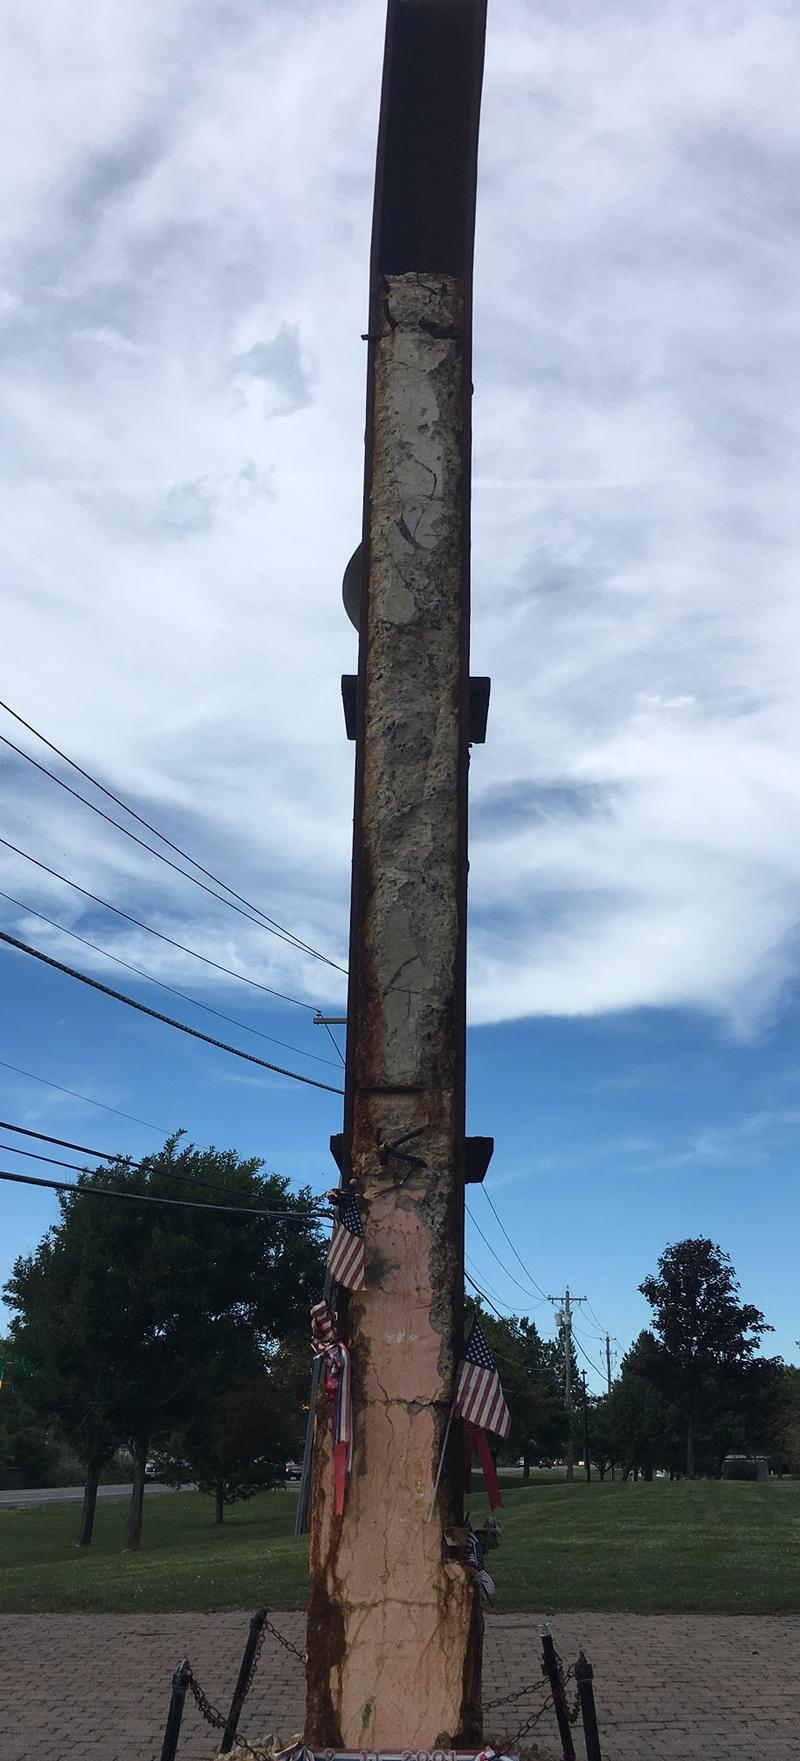 Concrete is still embedded in the column.